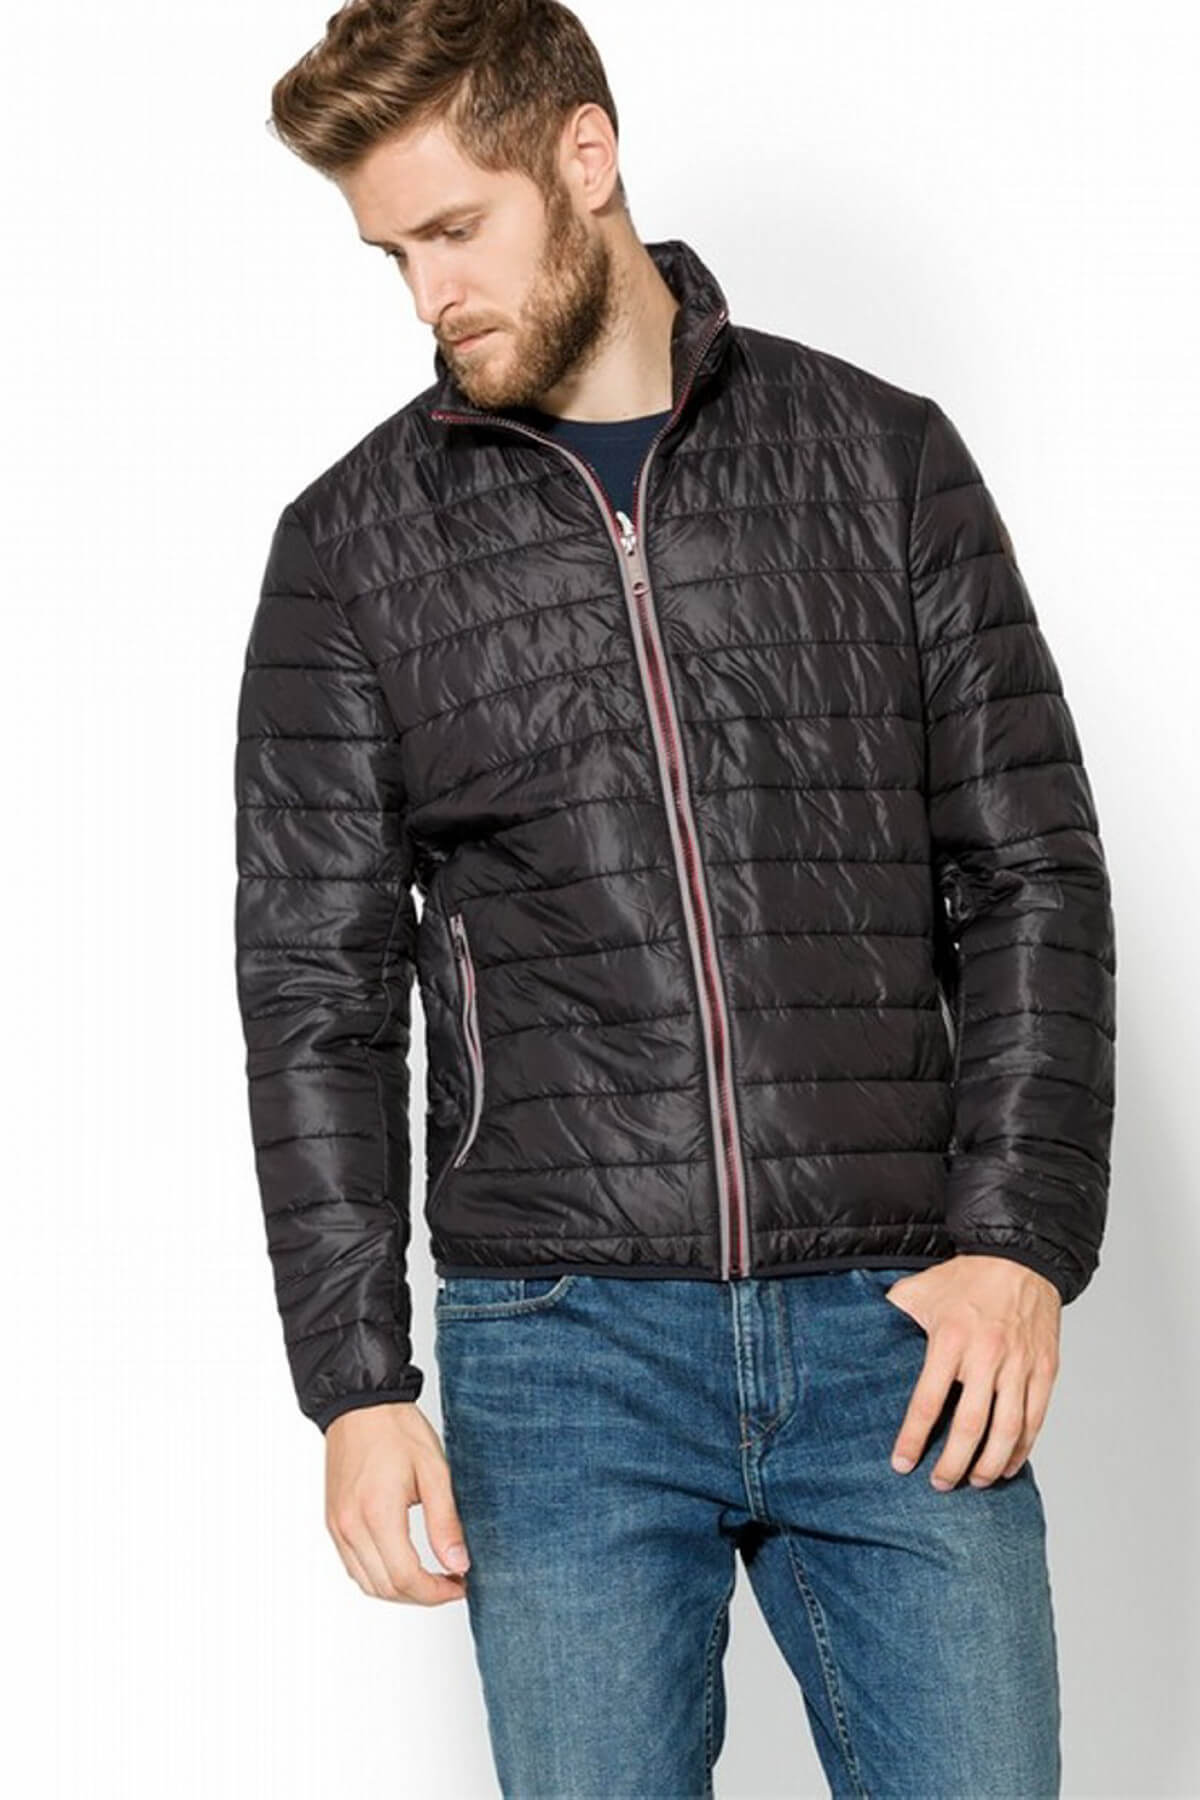 Timberland Milford Quilted Jacket – 599.2 TL